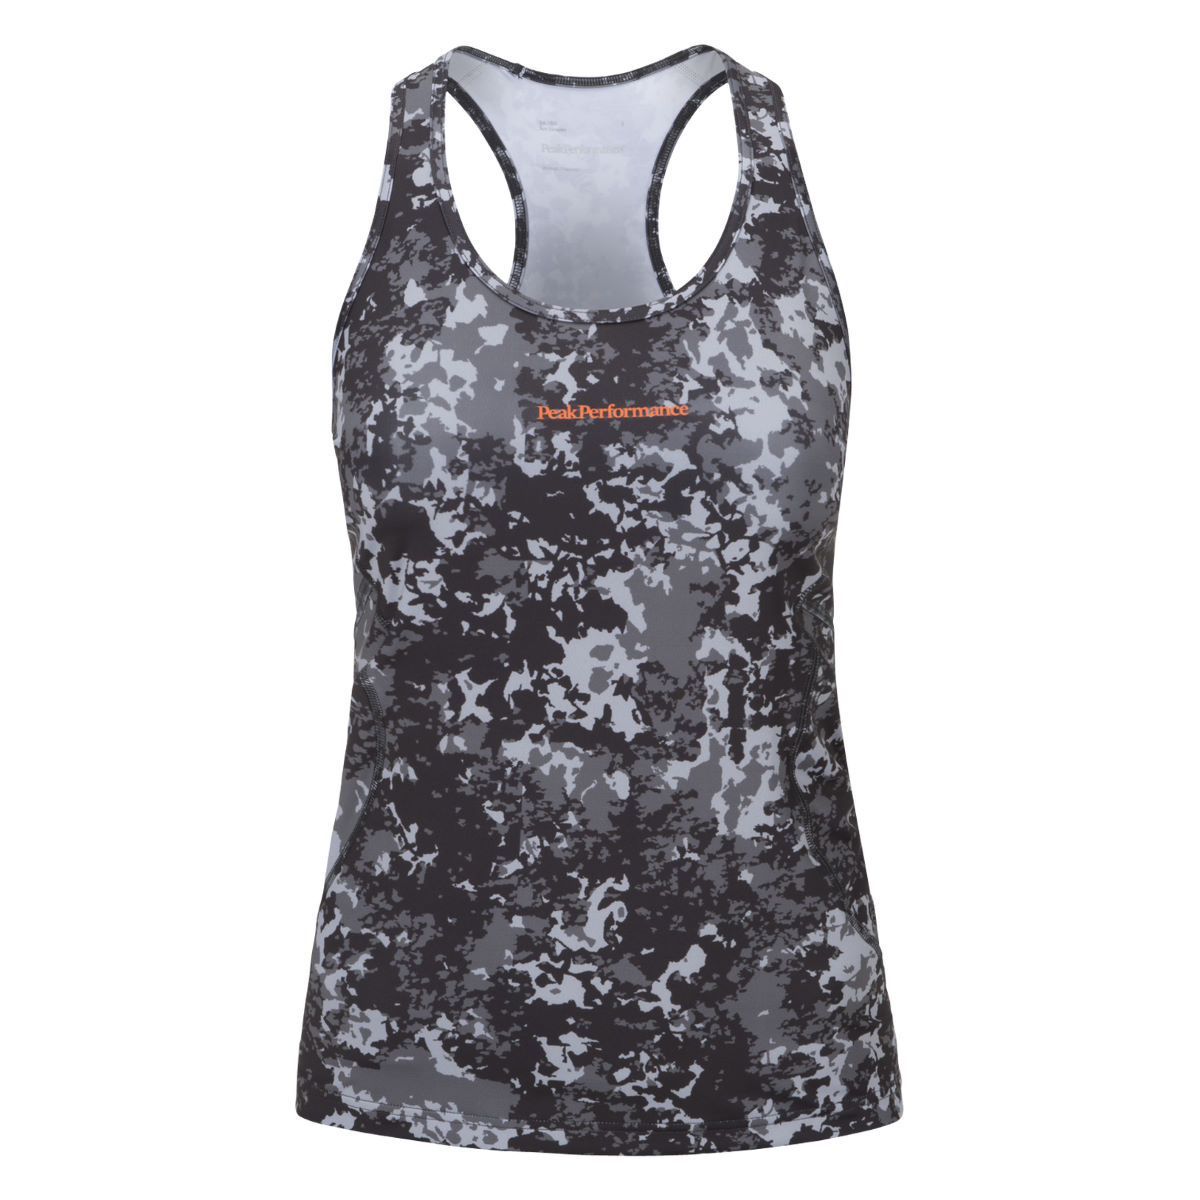 Peak Performance Women's Cappis Printed Top - Medium Pattern